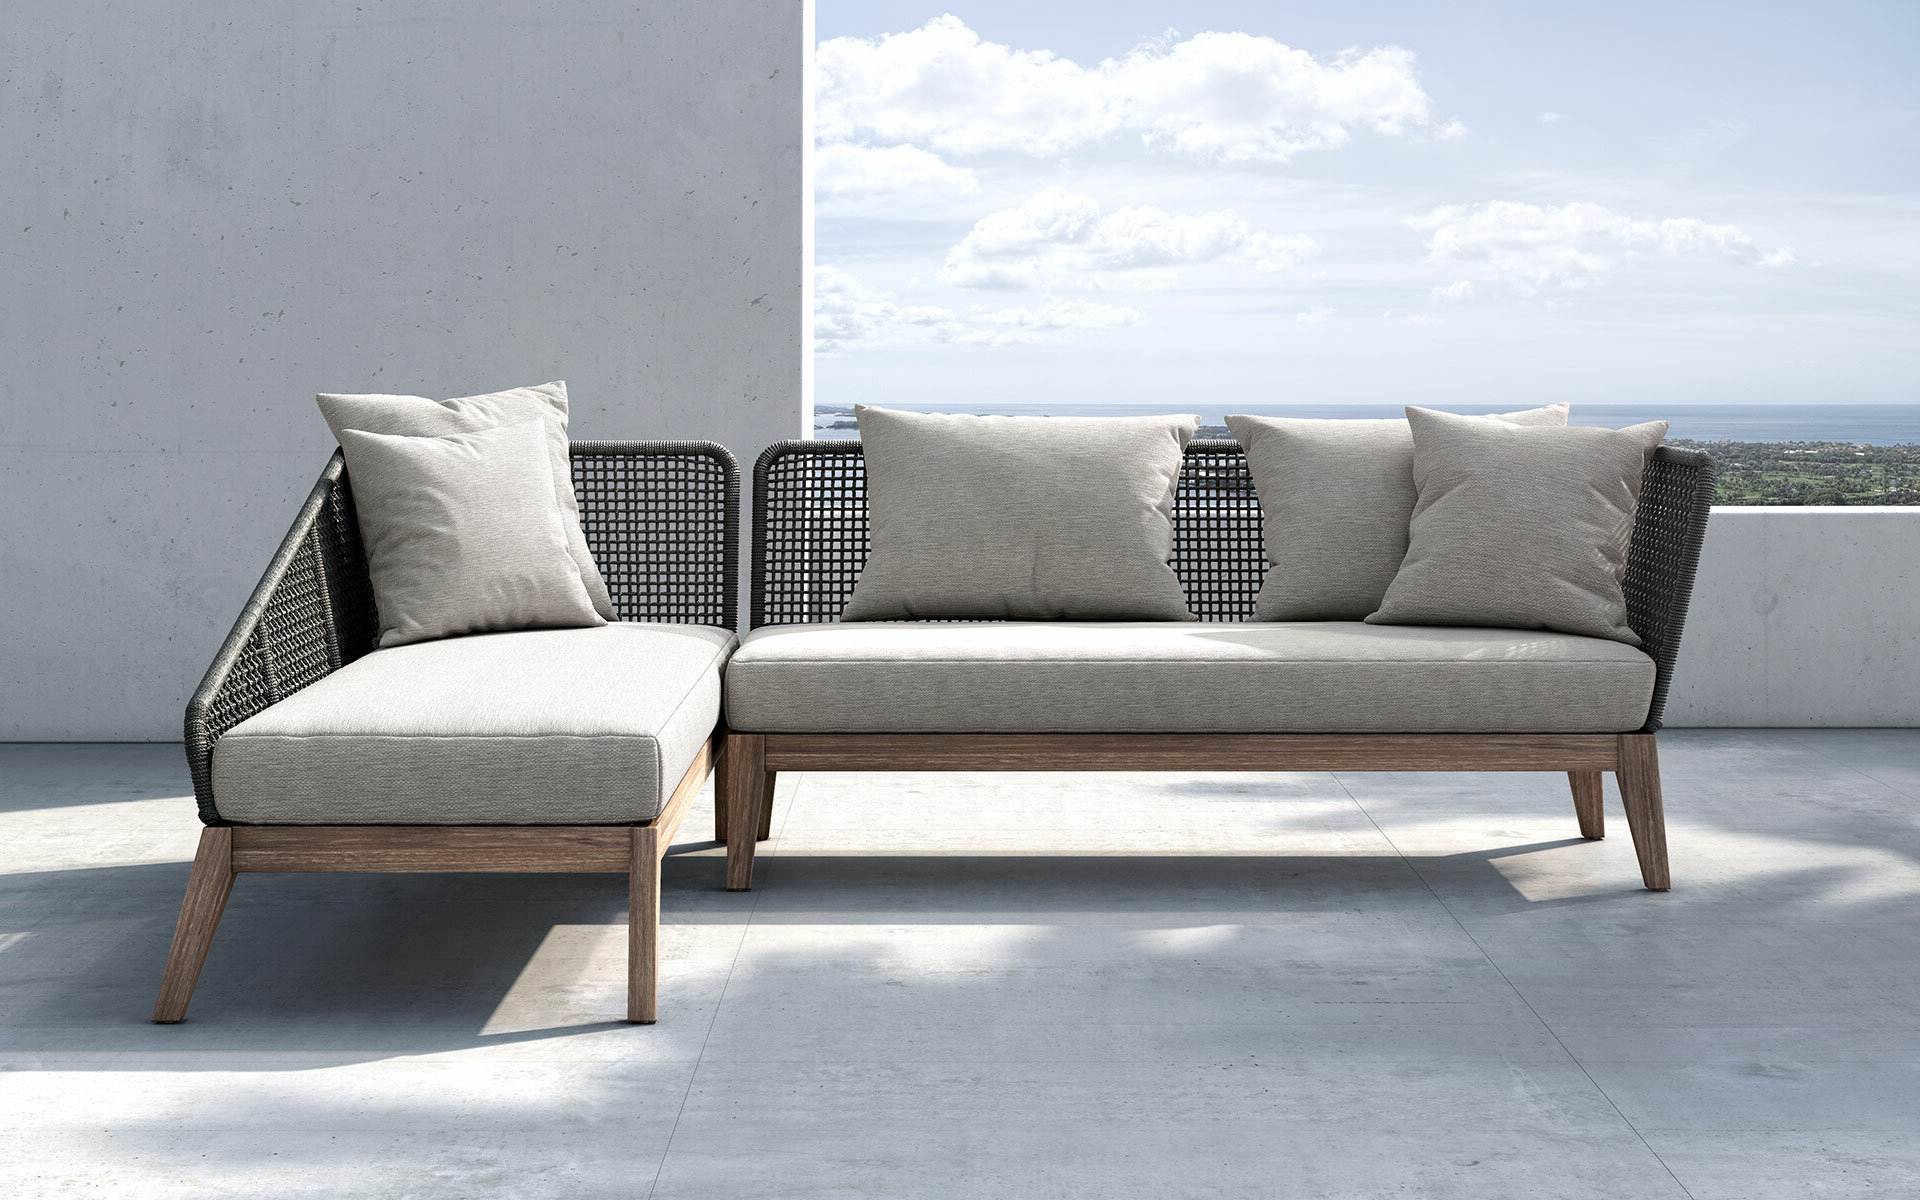 2020 Paloma Sectionals With Cushions Inside Netta Patio Sectional With Cushion (View 1 of 20)